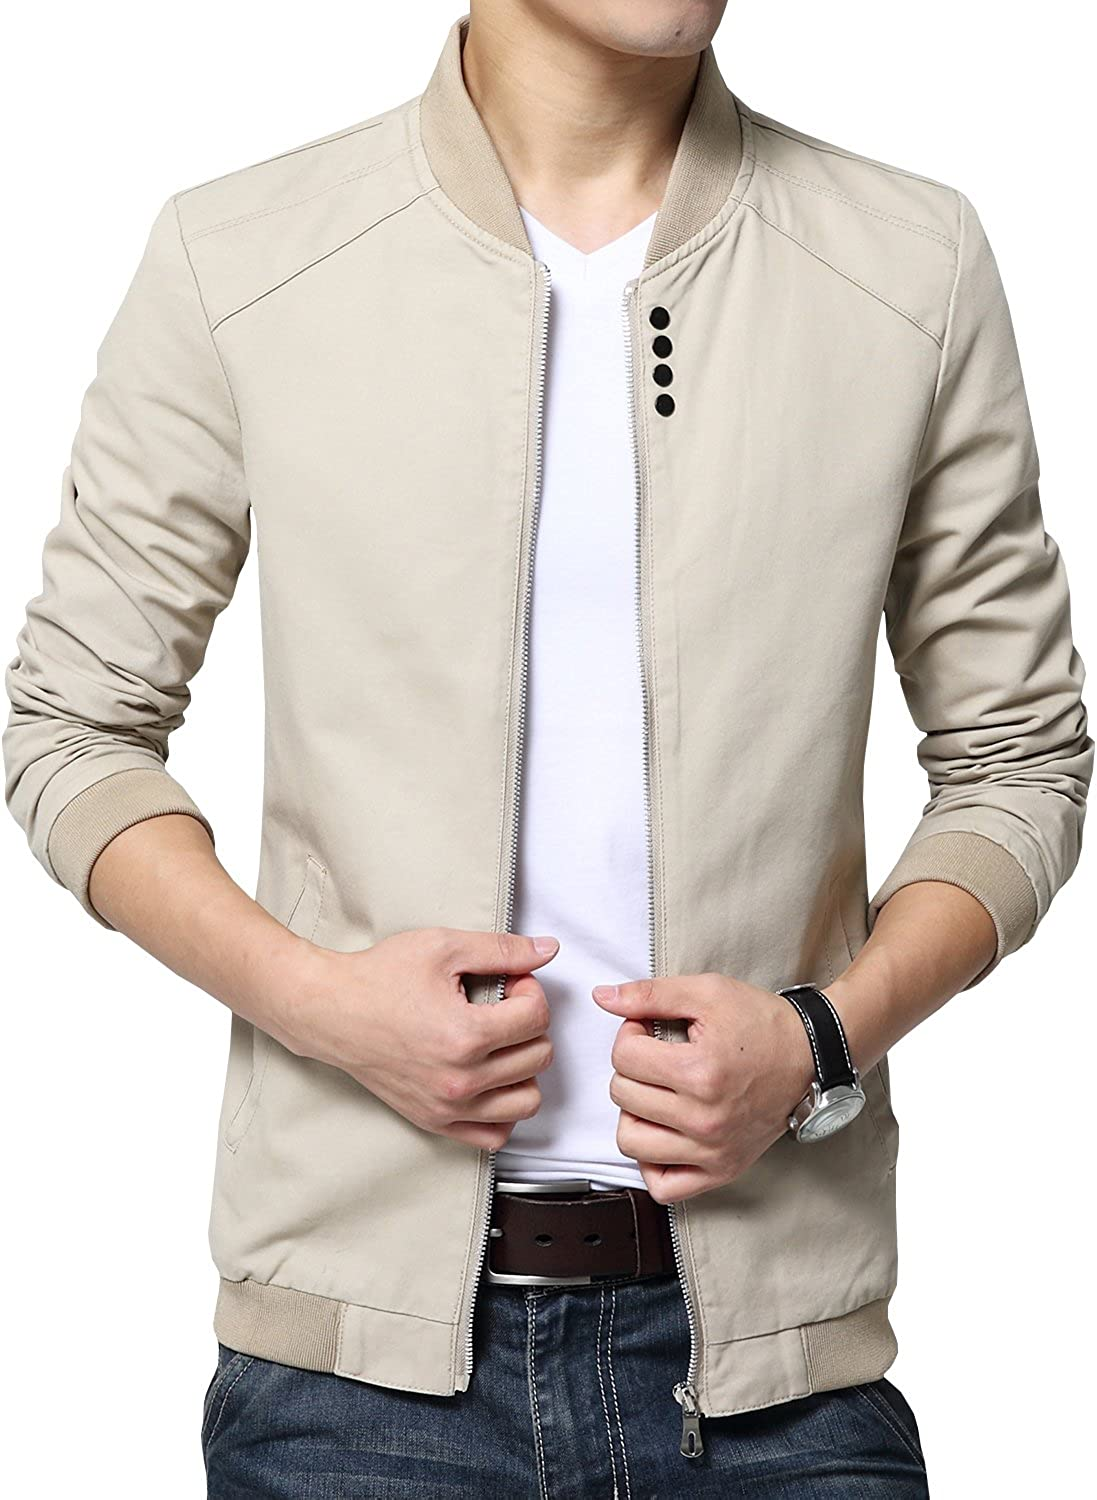 Womleys Mens Autumn Casual Bomber Jacket Coat Cotton Outerwear